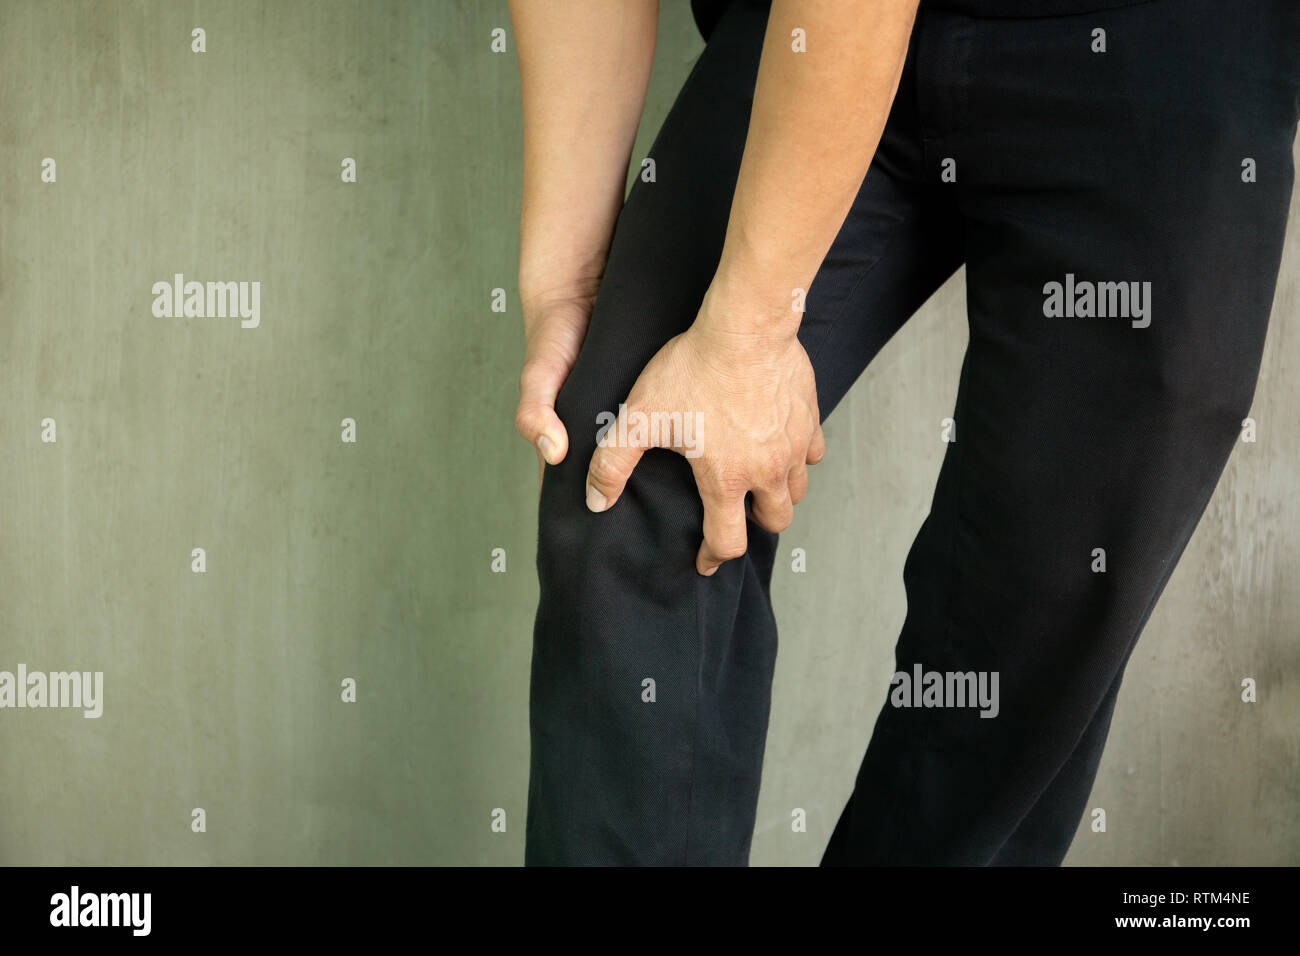 Man grab his knee experiencing pain isolated in grey background - Stock Image